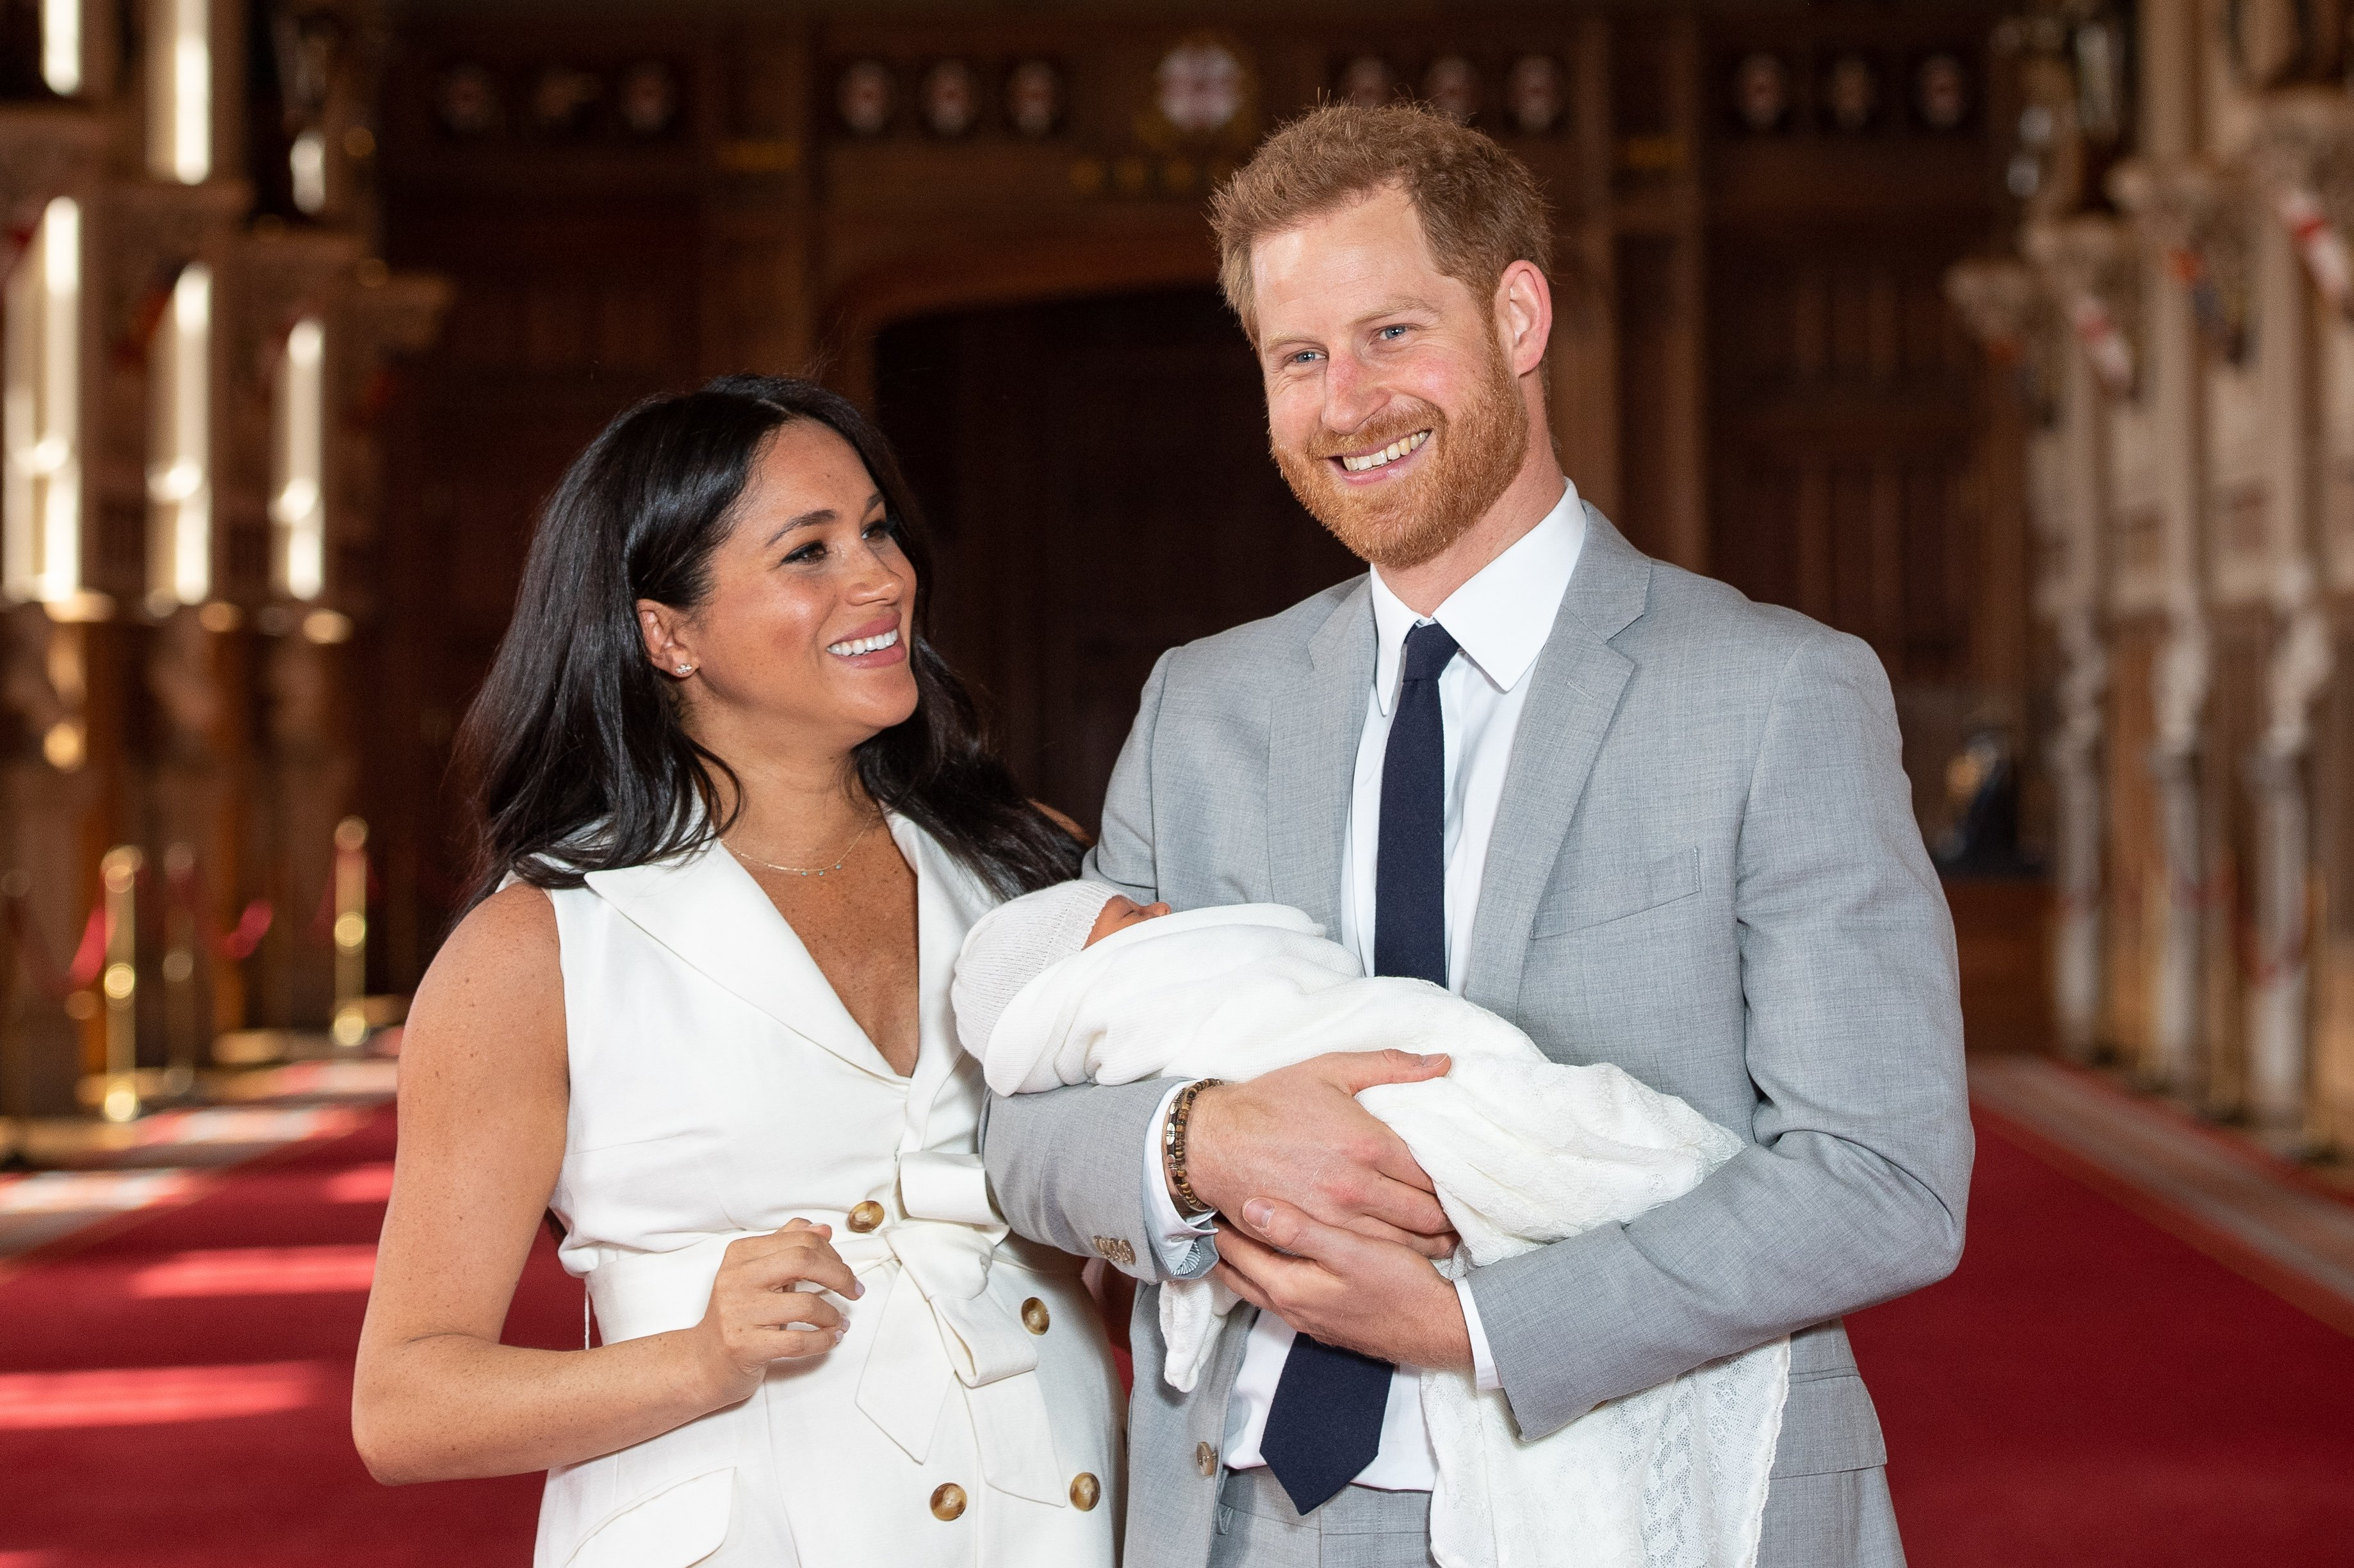 Image Credits: Getty Images /  Dominic Lipinski - WPA Pool   Prince Harry, Duke of Sussex and Meghan, Duchess of Sussex, pose with their newborn son Archie Harrison Mountbatten-Windsor during a photocall in St George's Hall at Windsor Castle on May 8, 2019 in Windsor, England. The Duchess of Sussex gave birth at 05:26 on Monday 06 May, 2019.